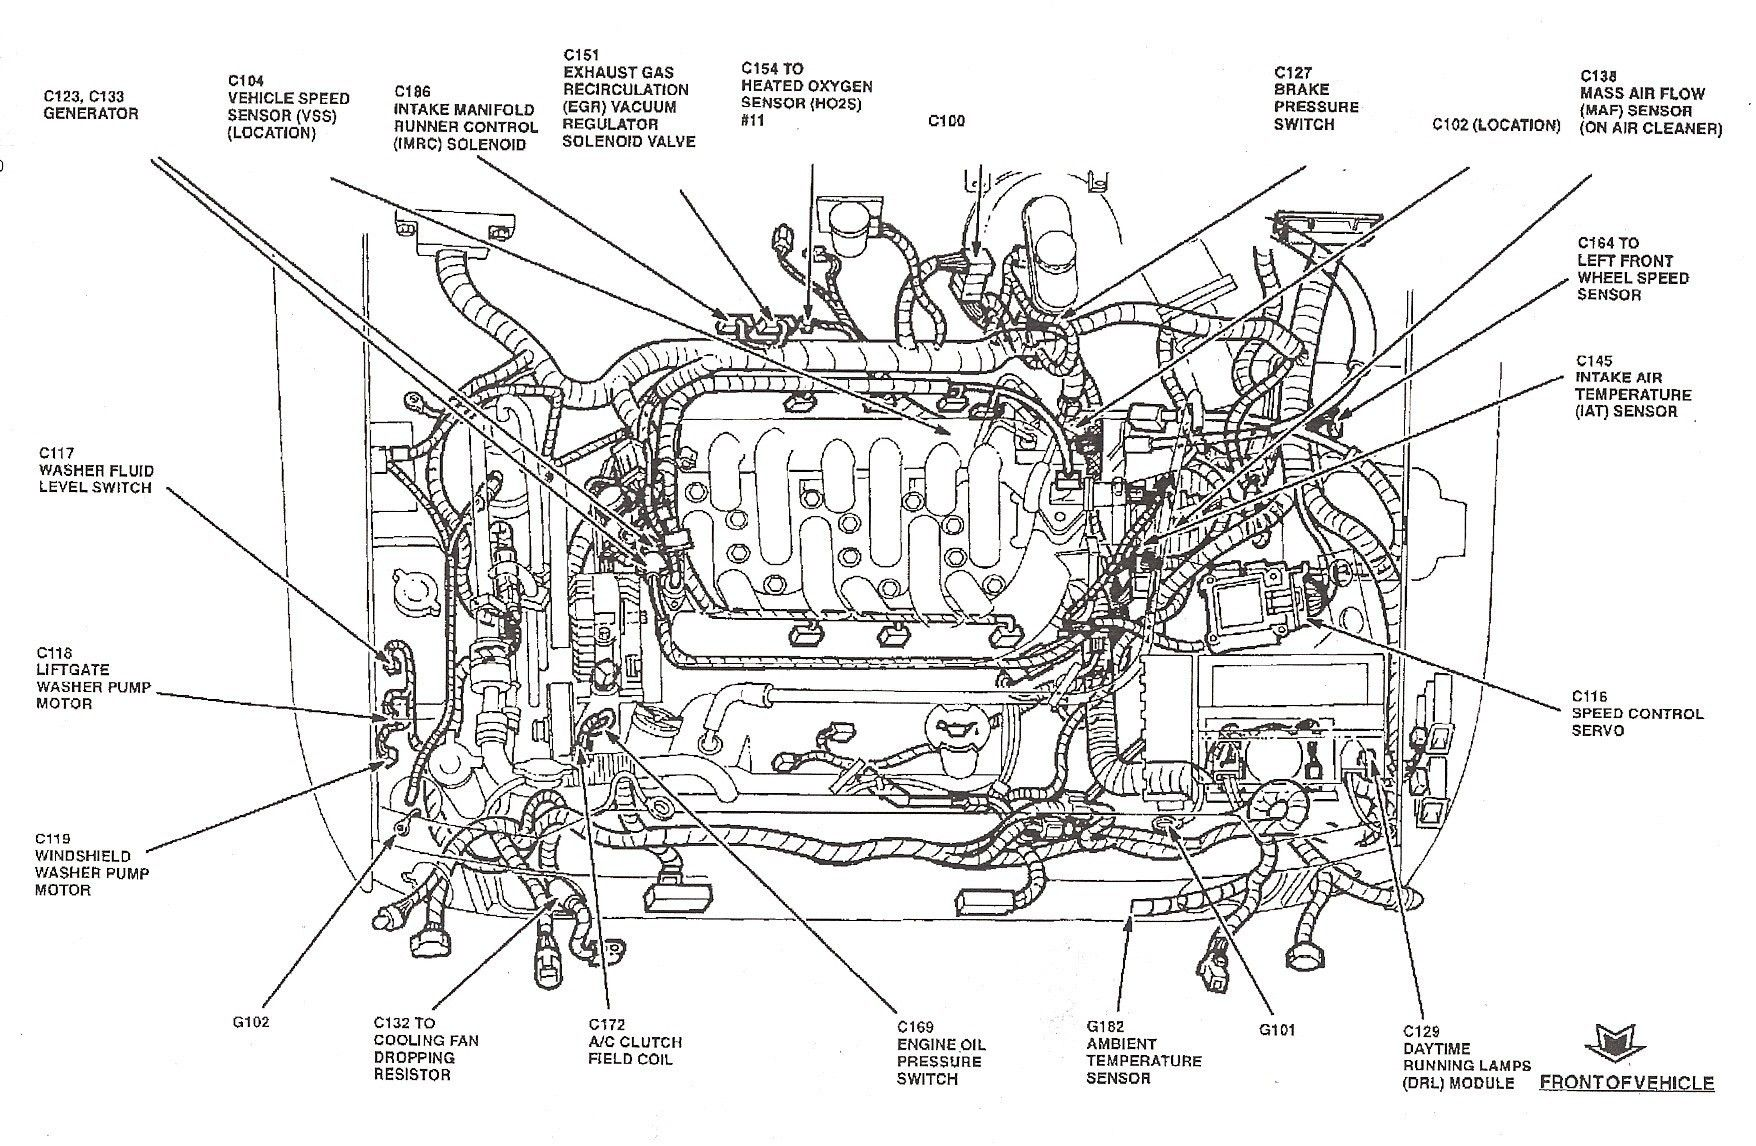 New Wiring Diagram Ruud Ac Unit | Ford focus engine, Ford ...